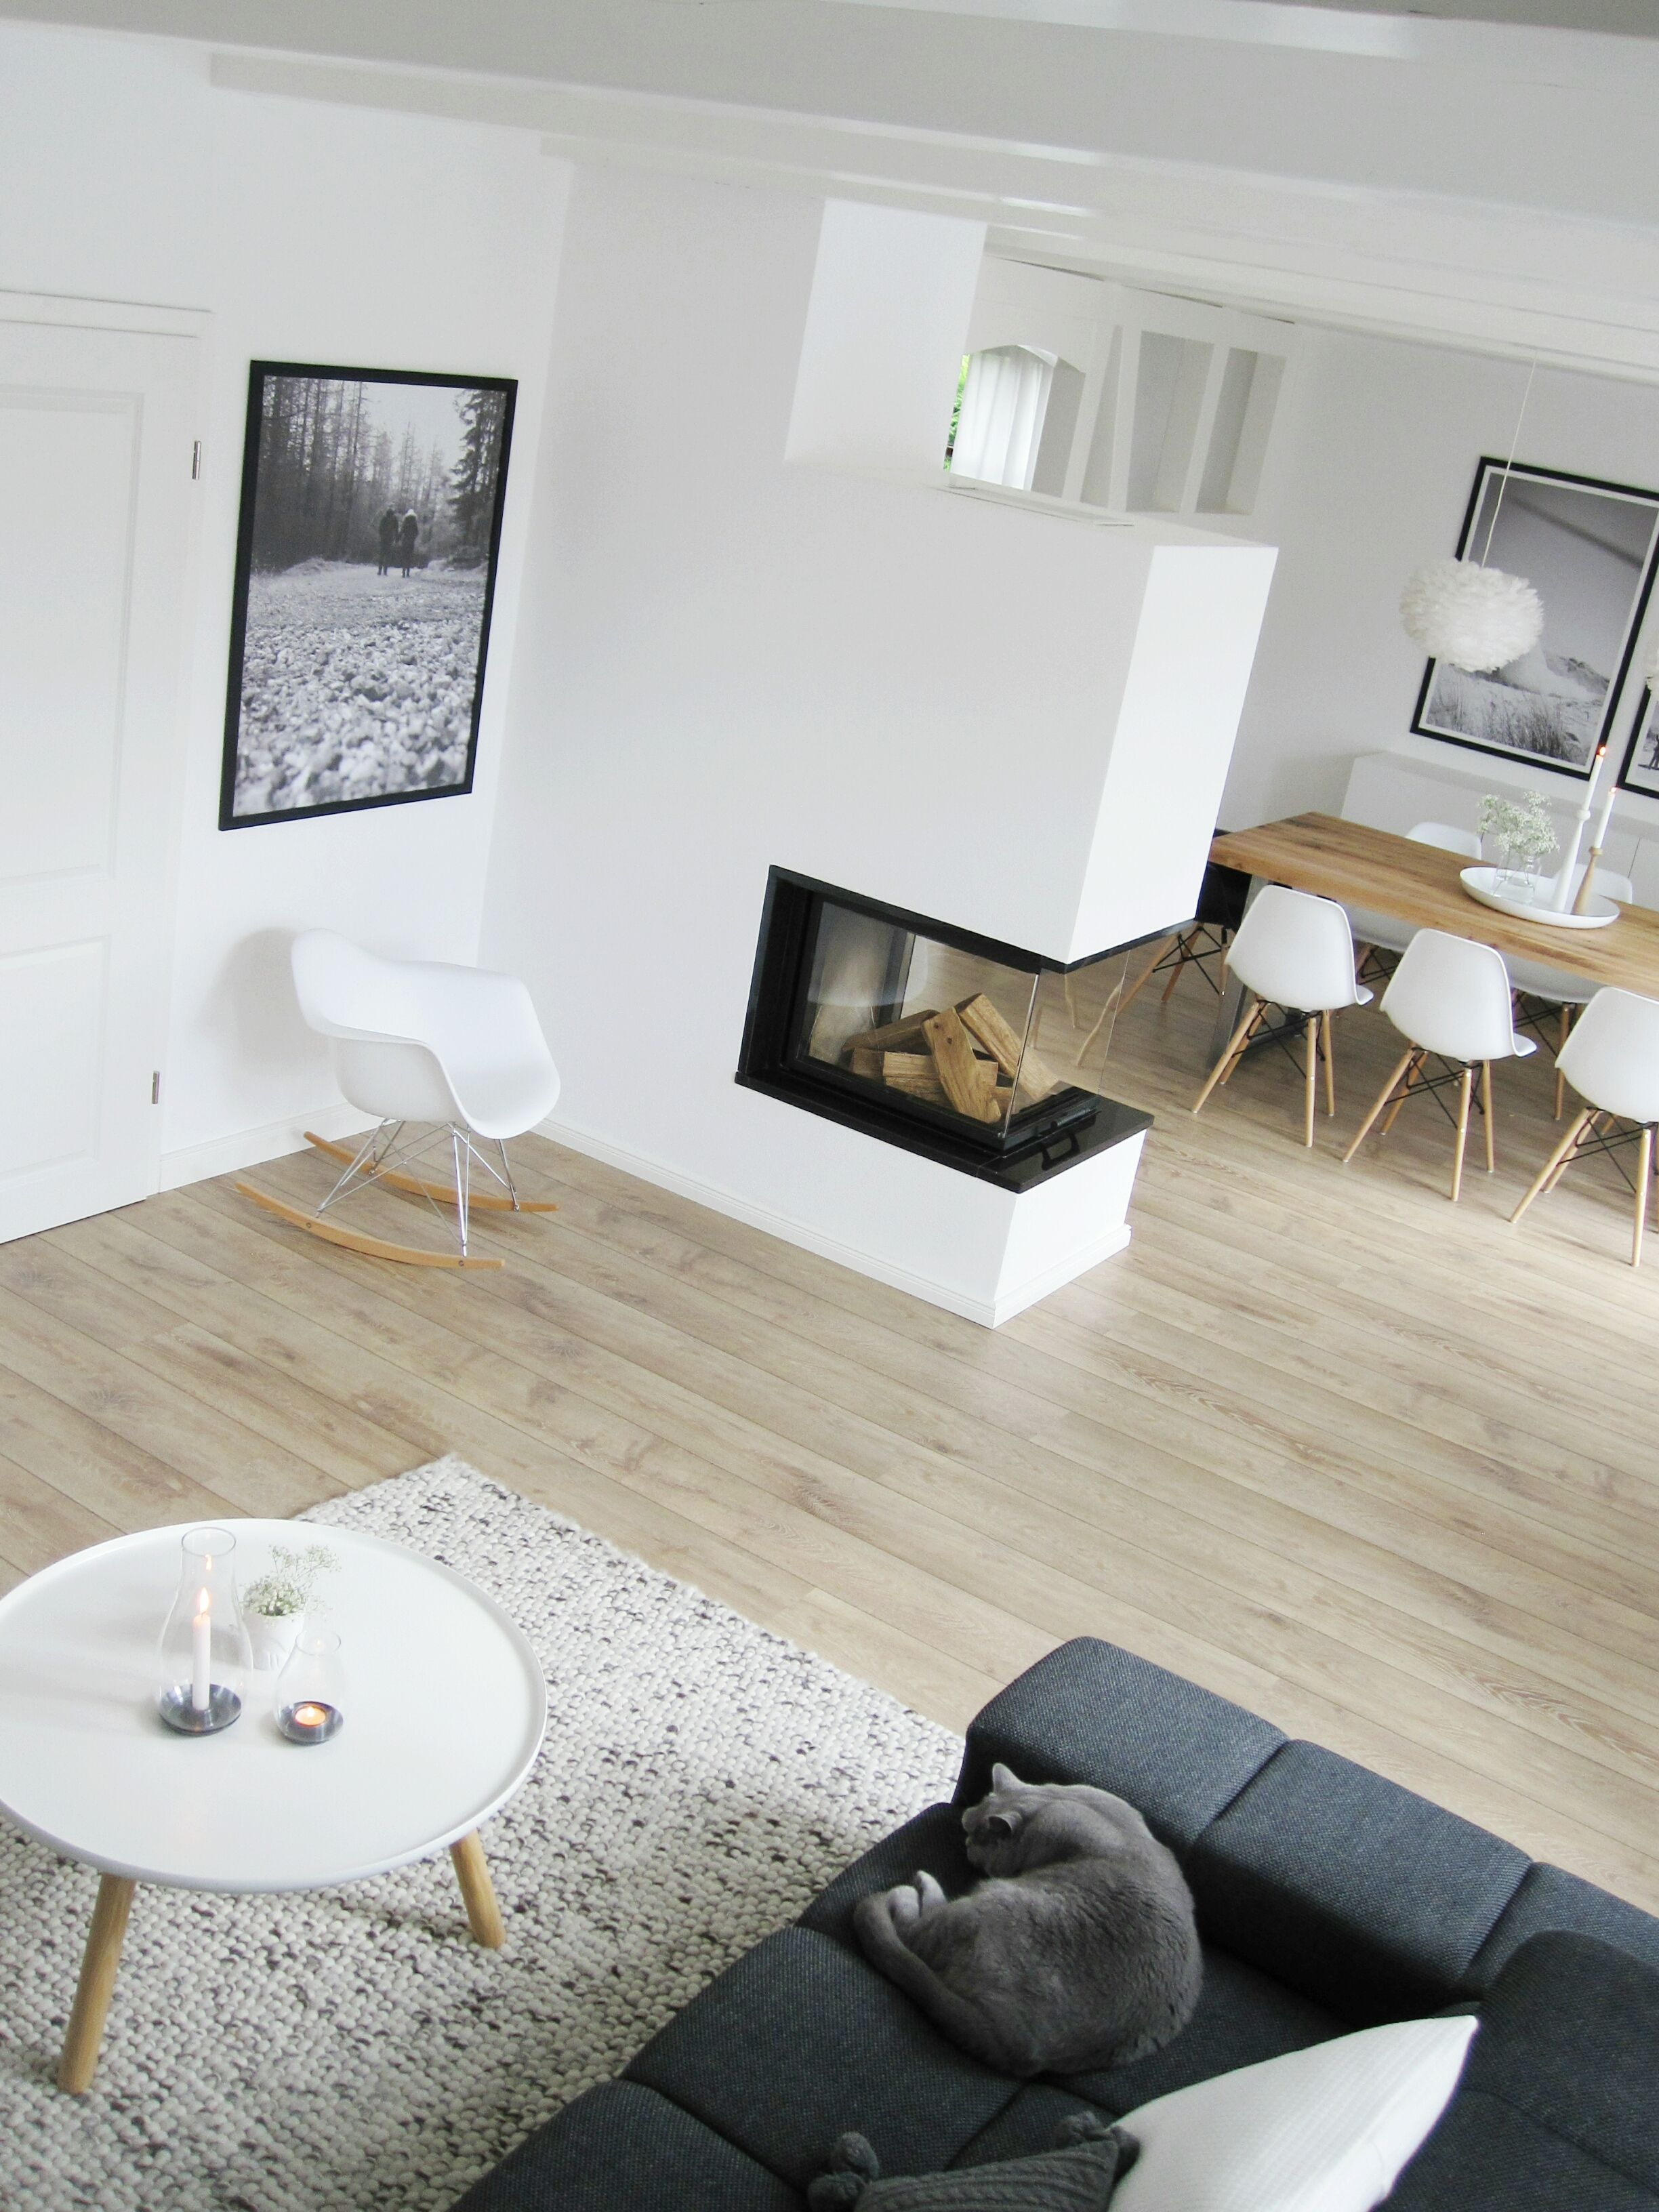 best images about wohnzimmer on pinterest urban outfitters tv